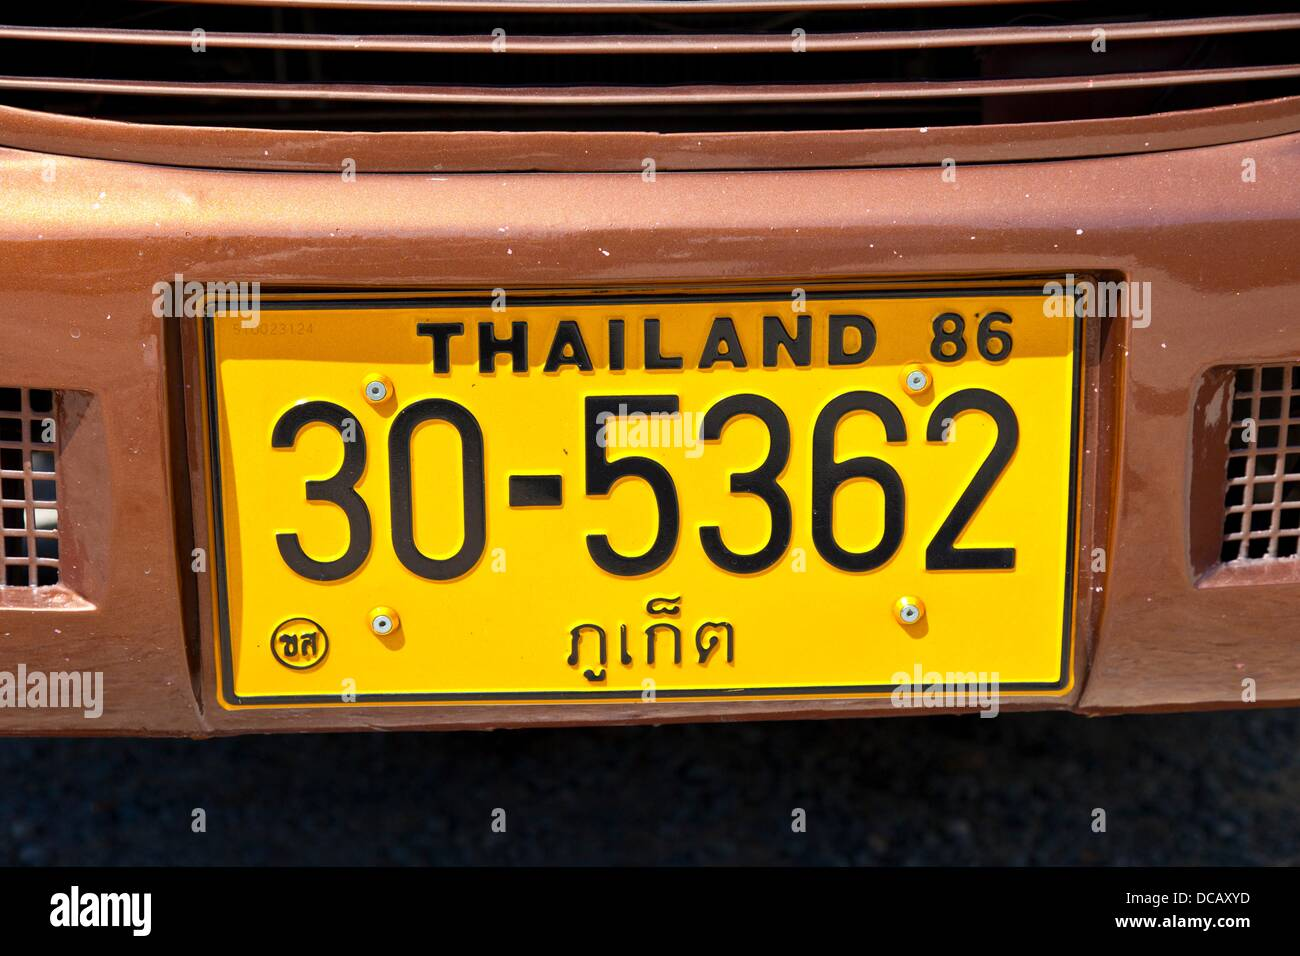 Thailand Number Plate Stock Photos Amp Thailand Number Plate